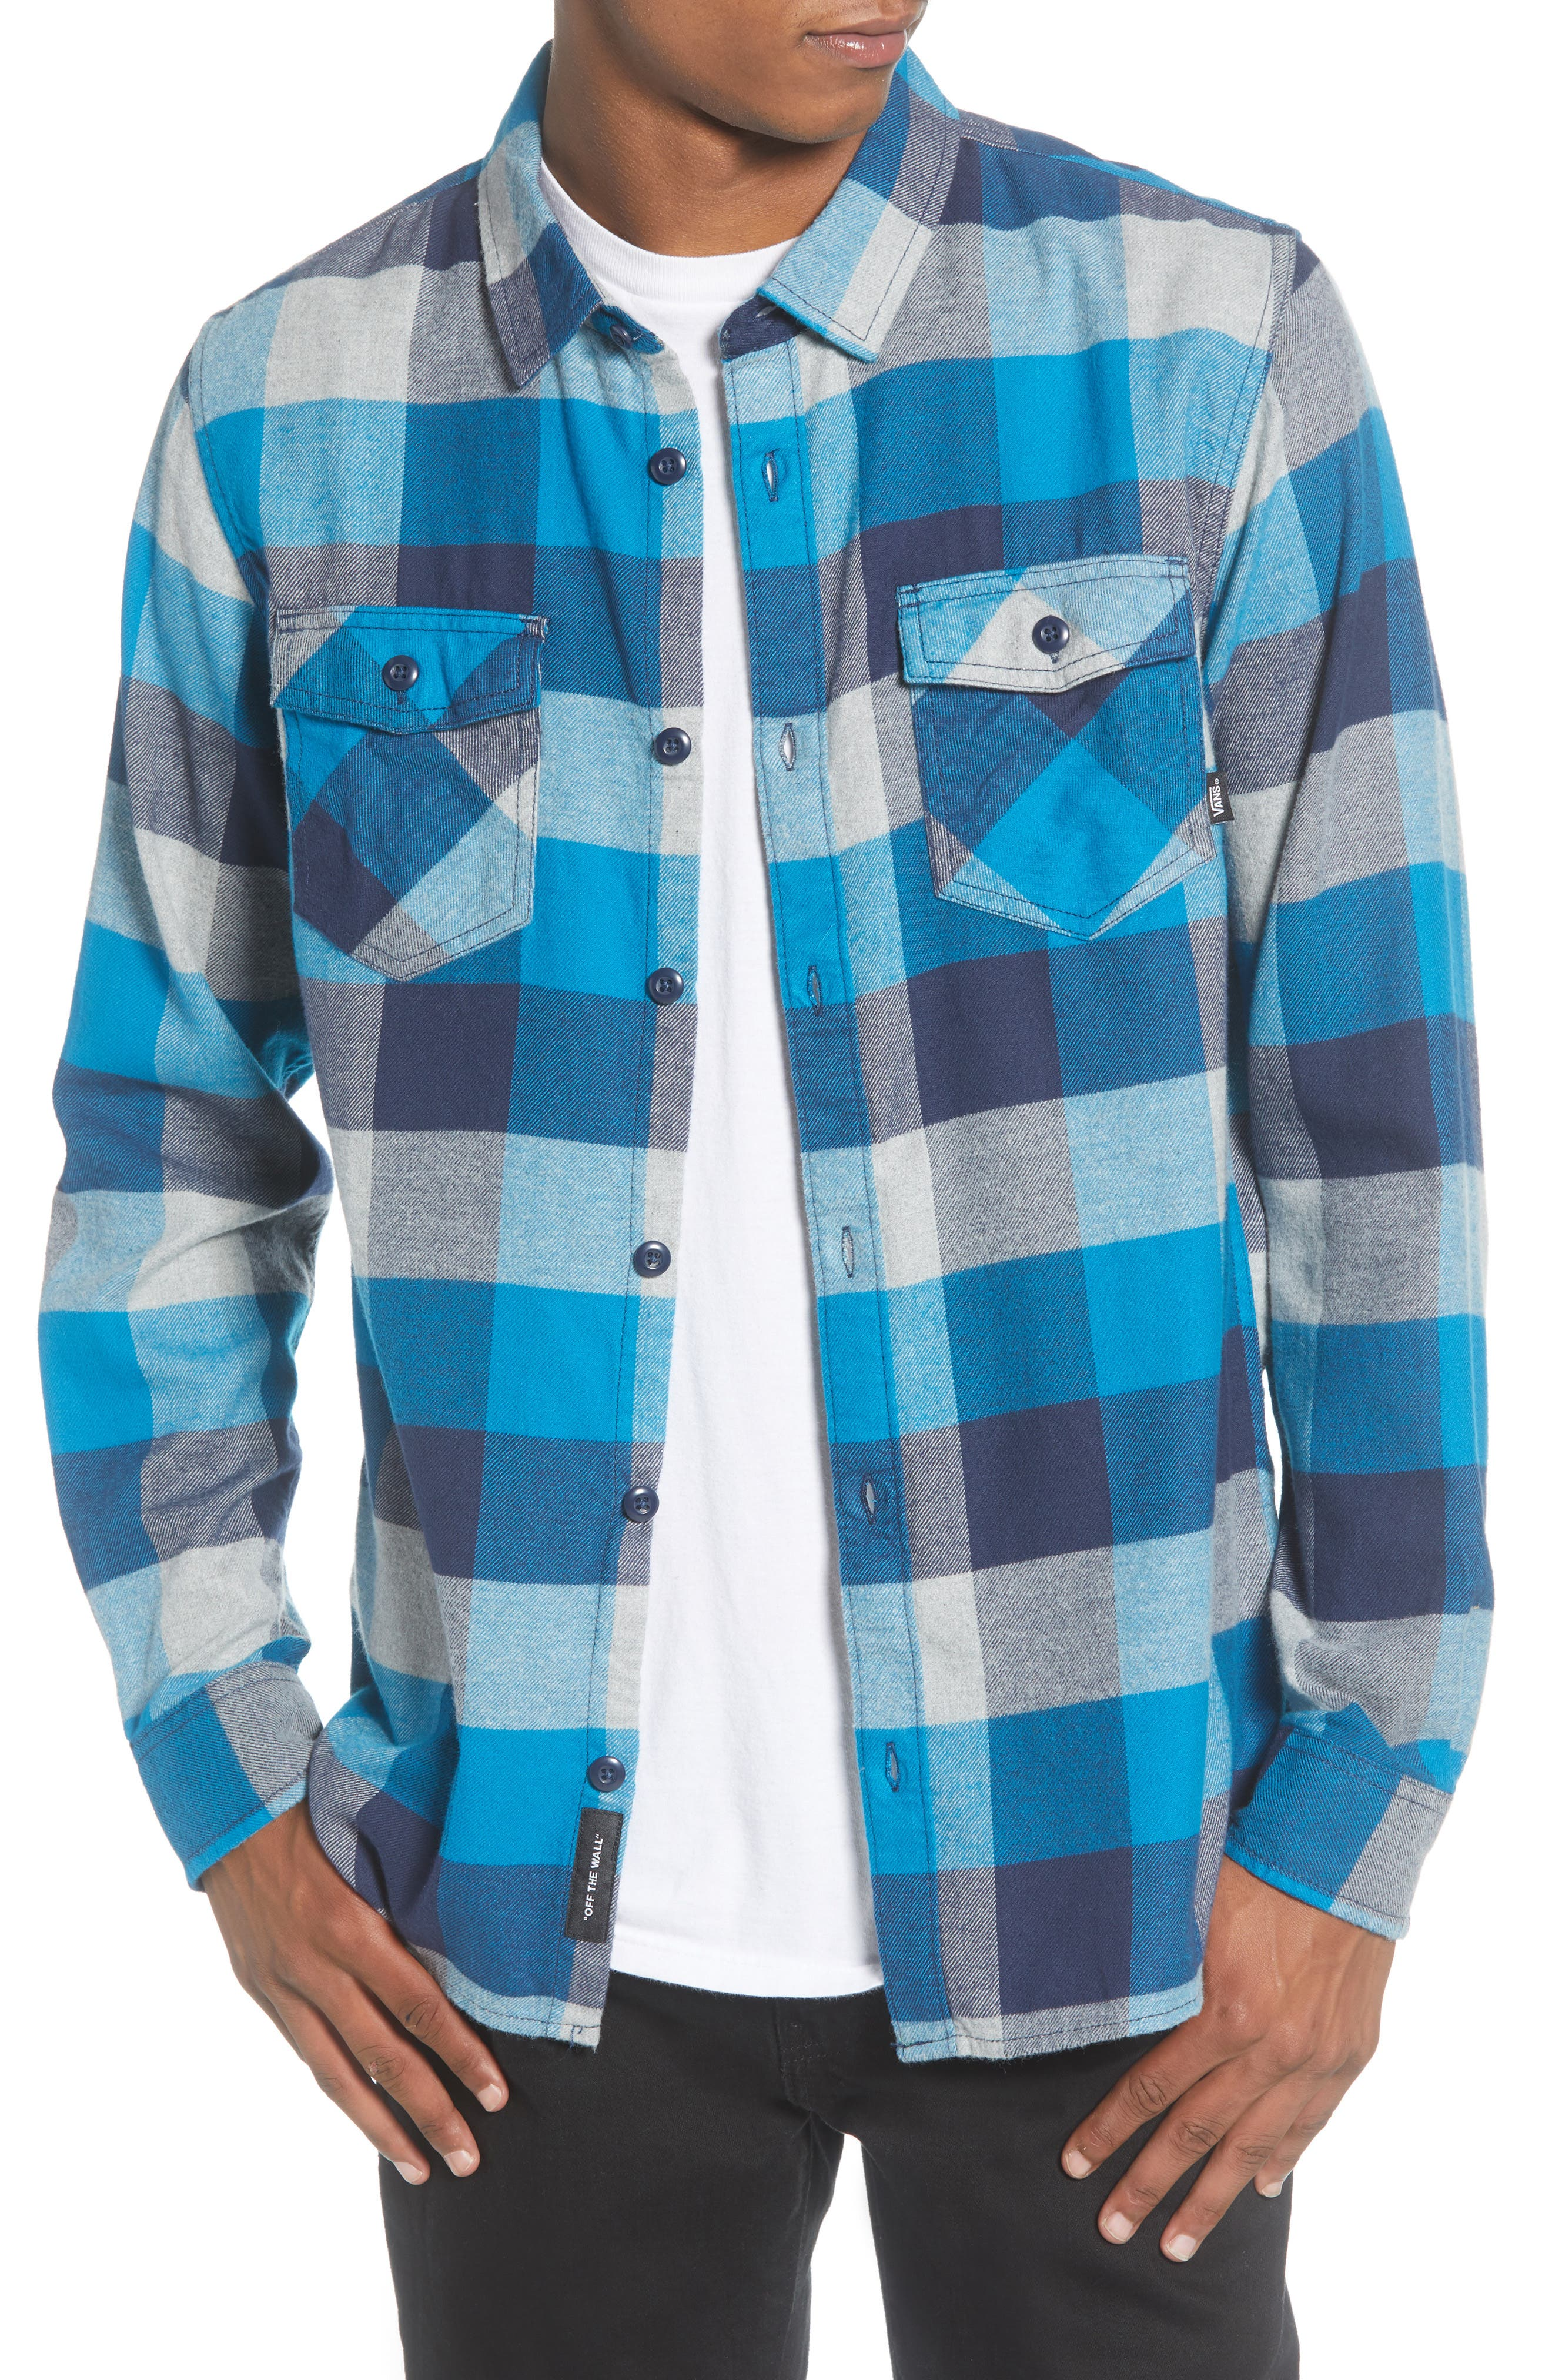 UPC 679894066999 product image for Men's Vans Box Button-Up Flannel Shirt, Size Medium - Grey | upcitemdb.com